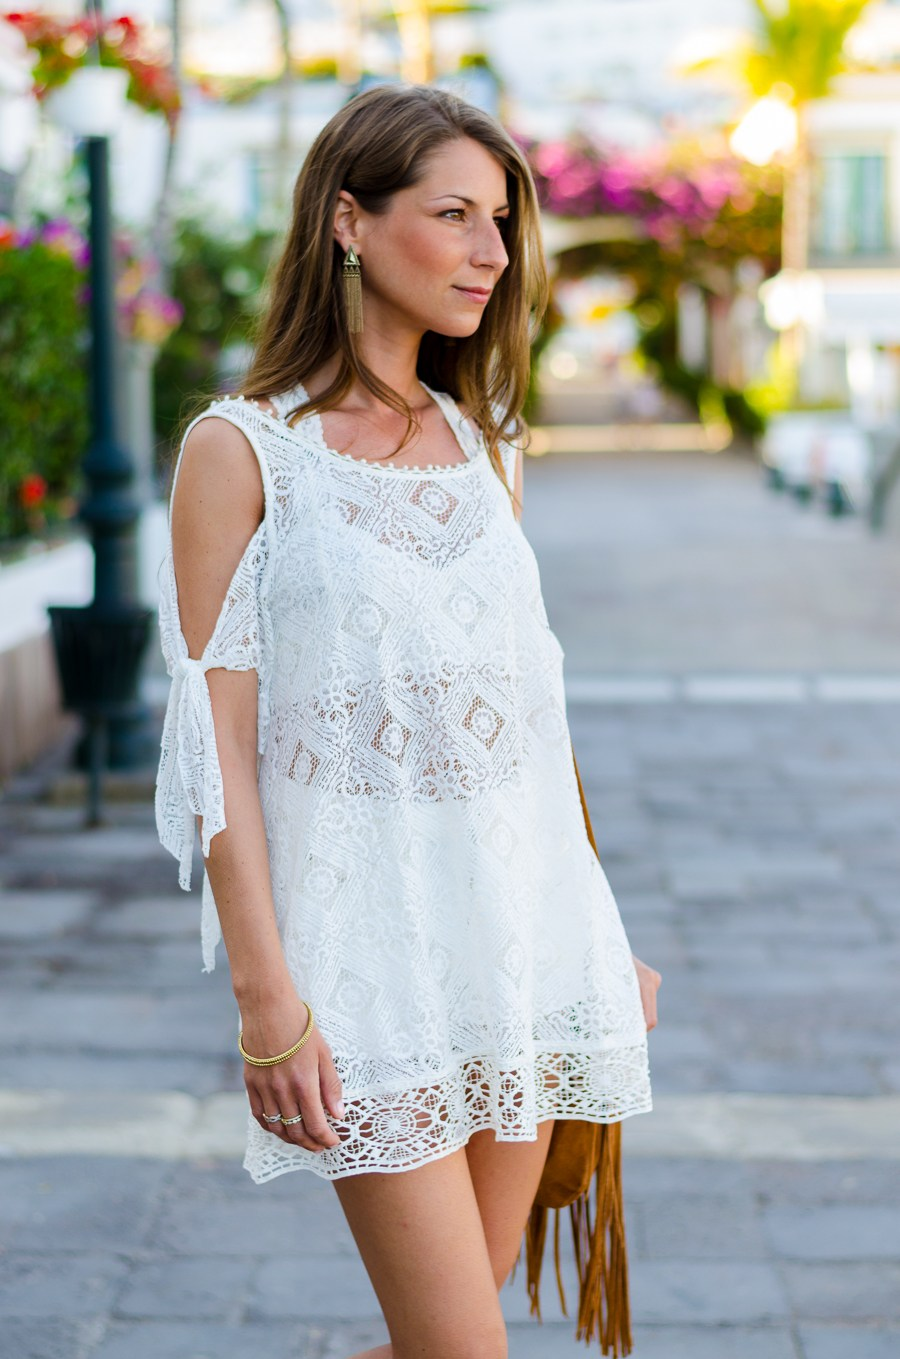 Outfit :: White lace dress & fringe bag